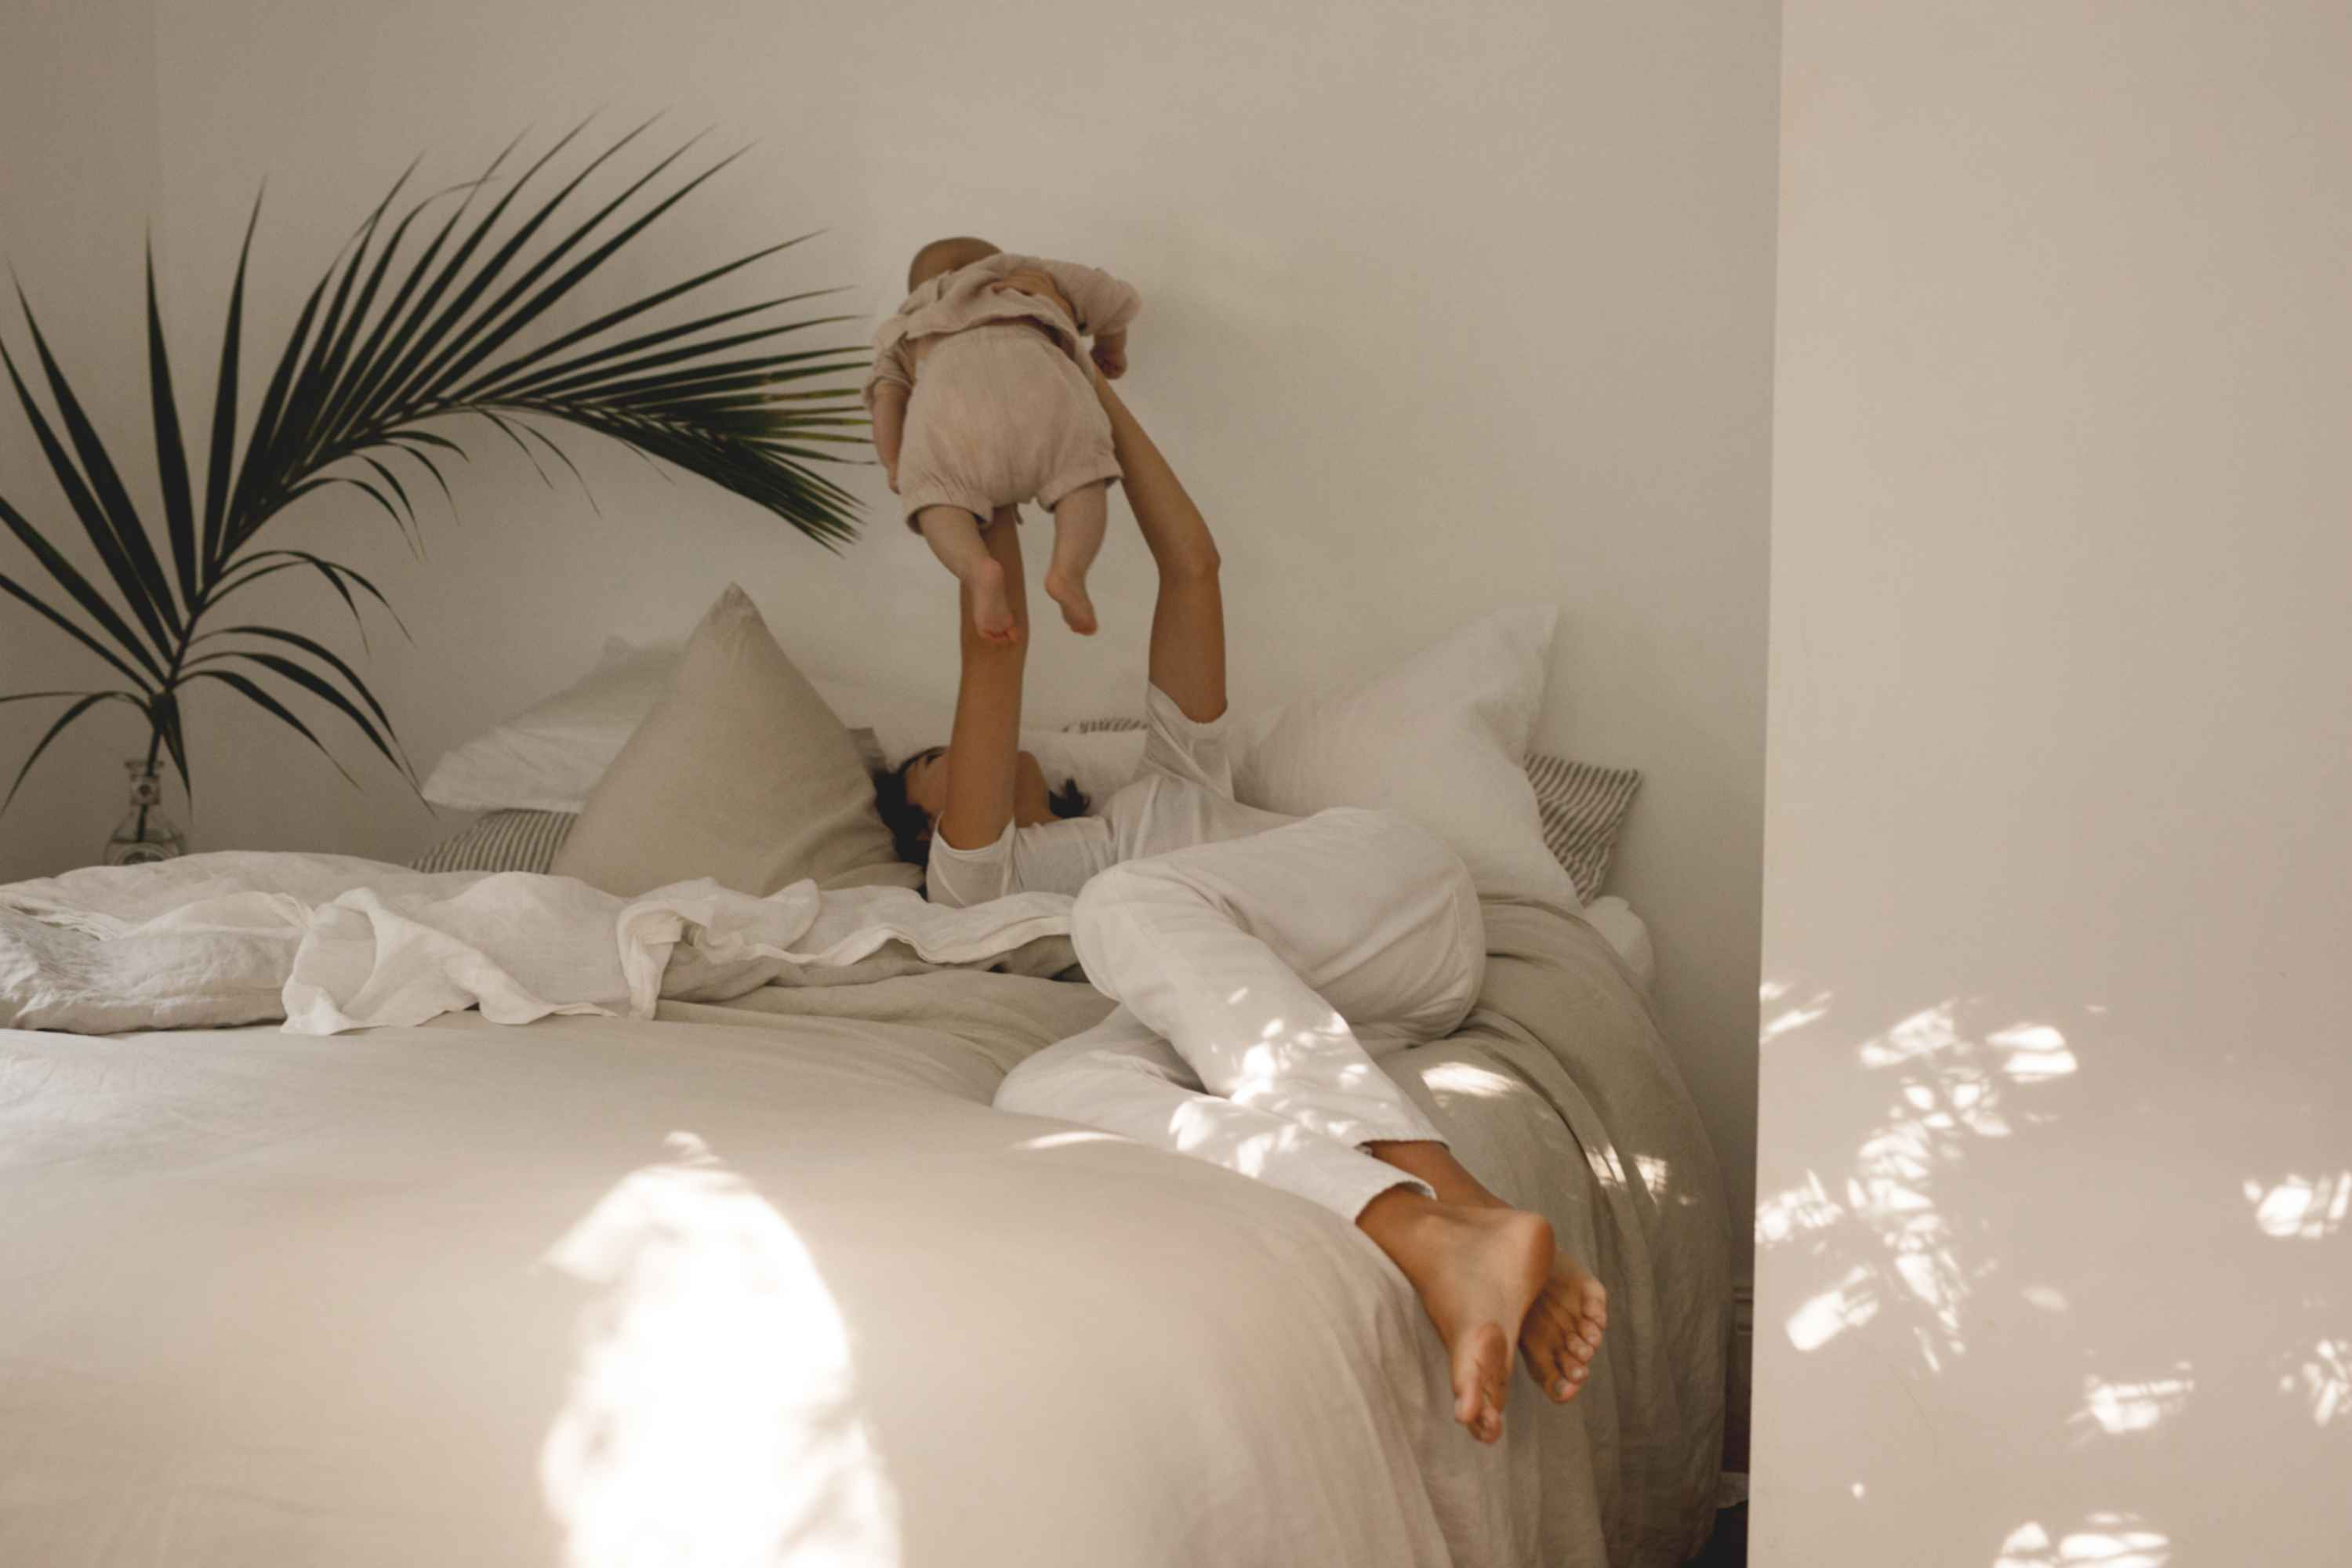 Chloë McCarthy for IN BED on Lord Howe Island